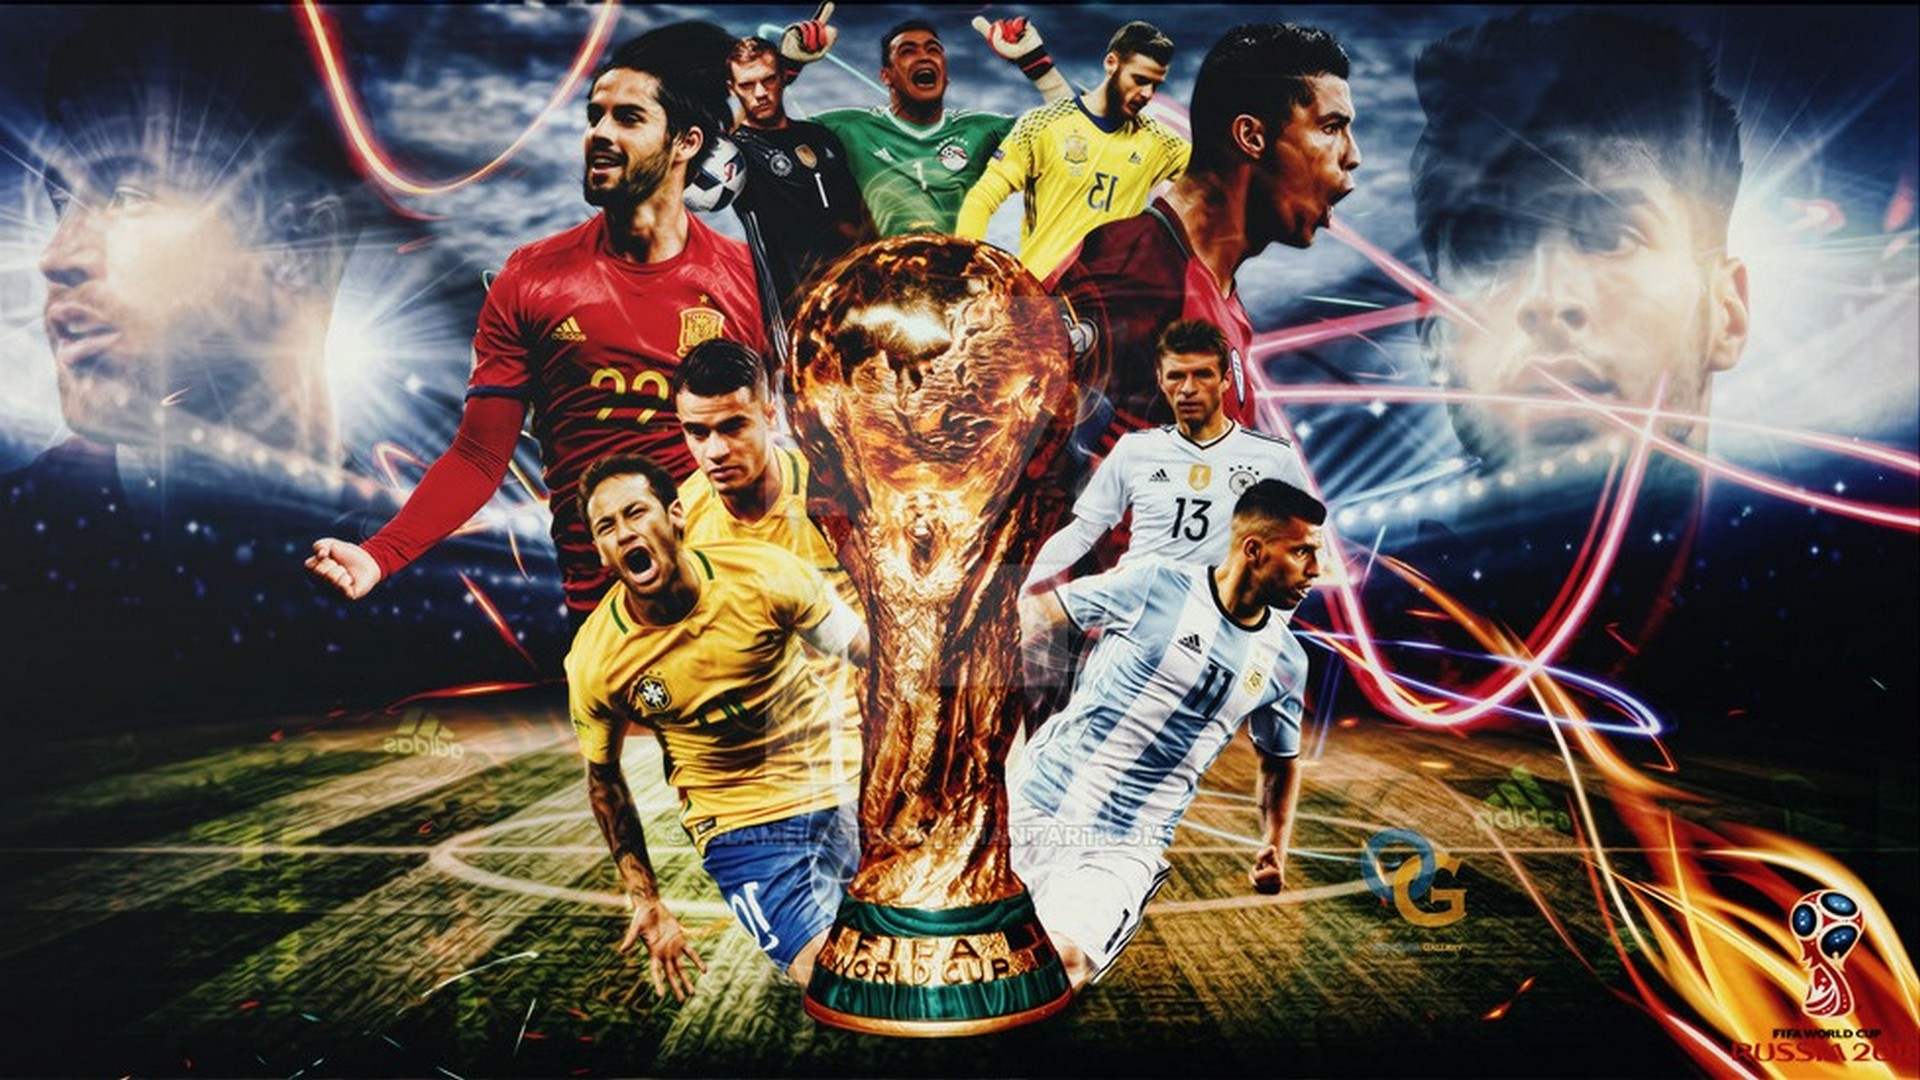 Wallpaper HD 2018 World Cup 1920x1080